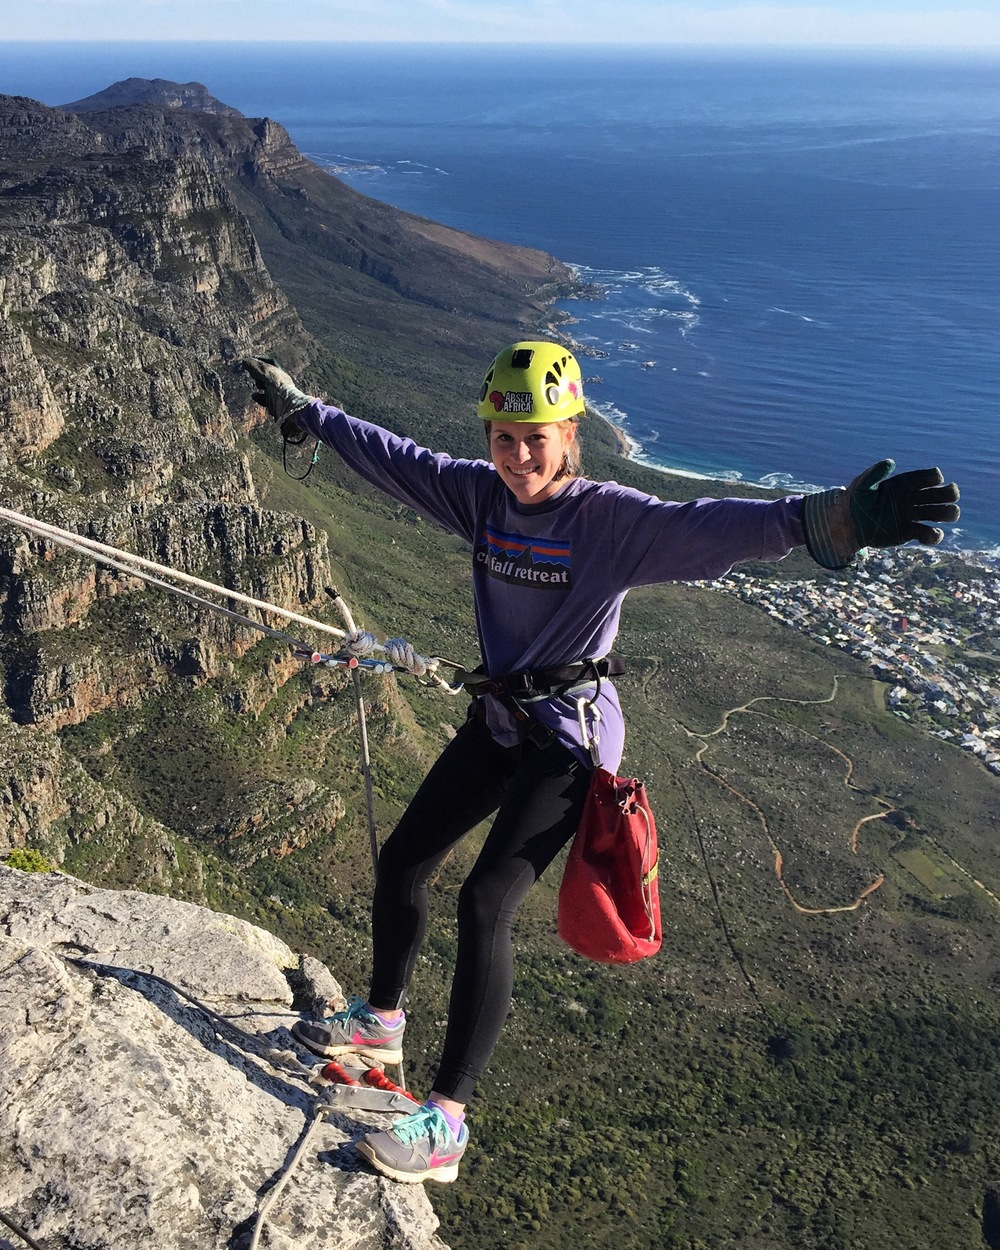 Corinne being adventurous in South Africa